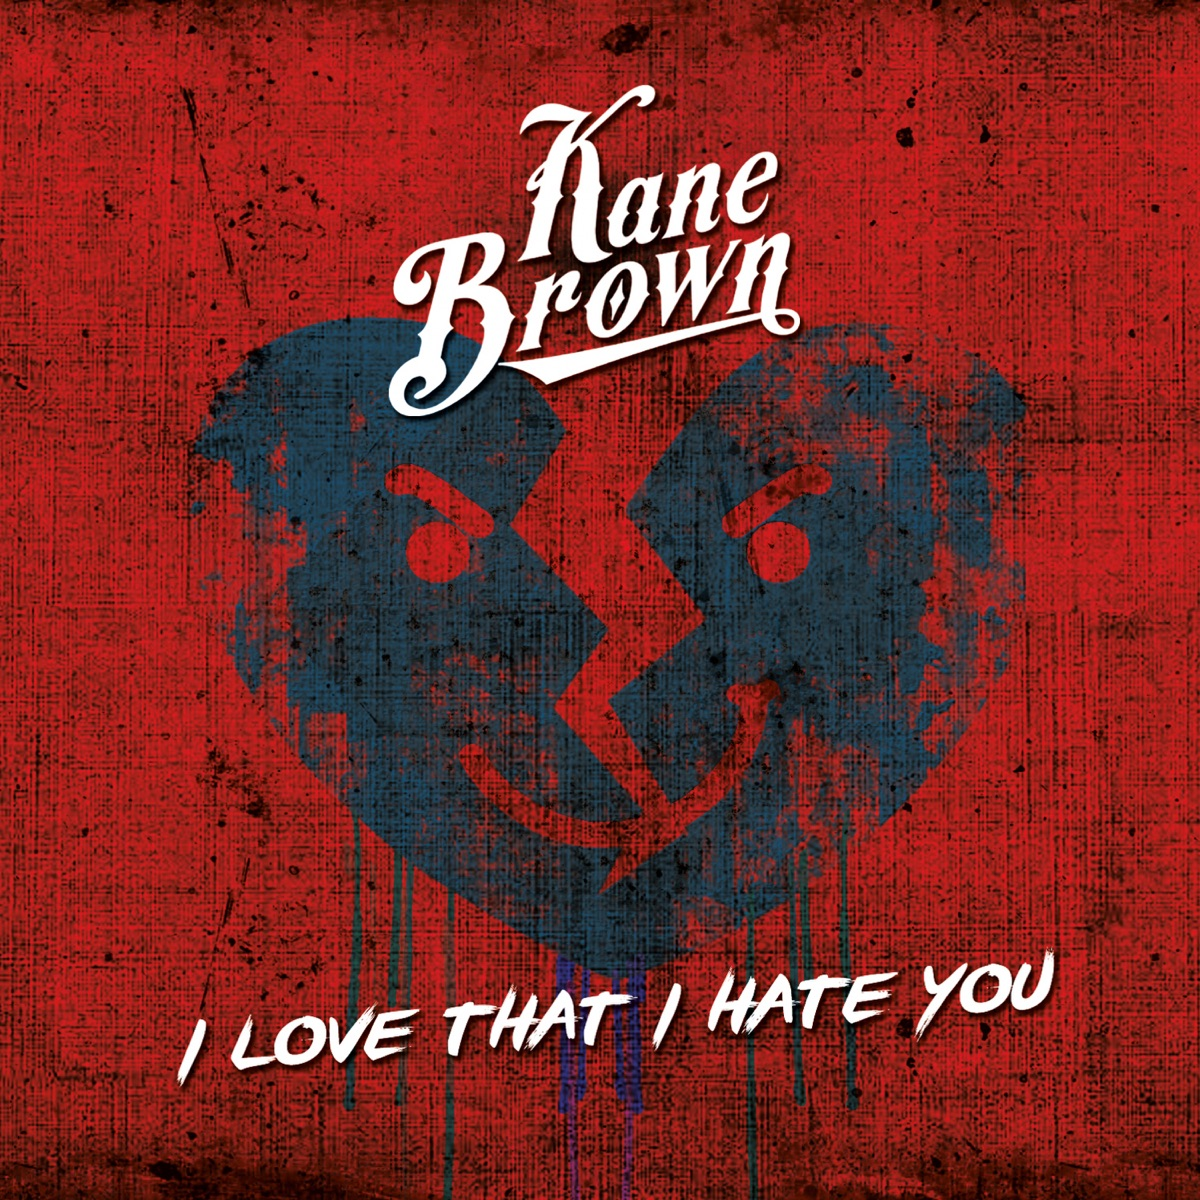 I Love That I Hate You - Single Kane Brown CD cover